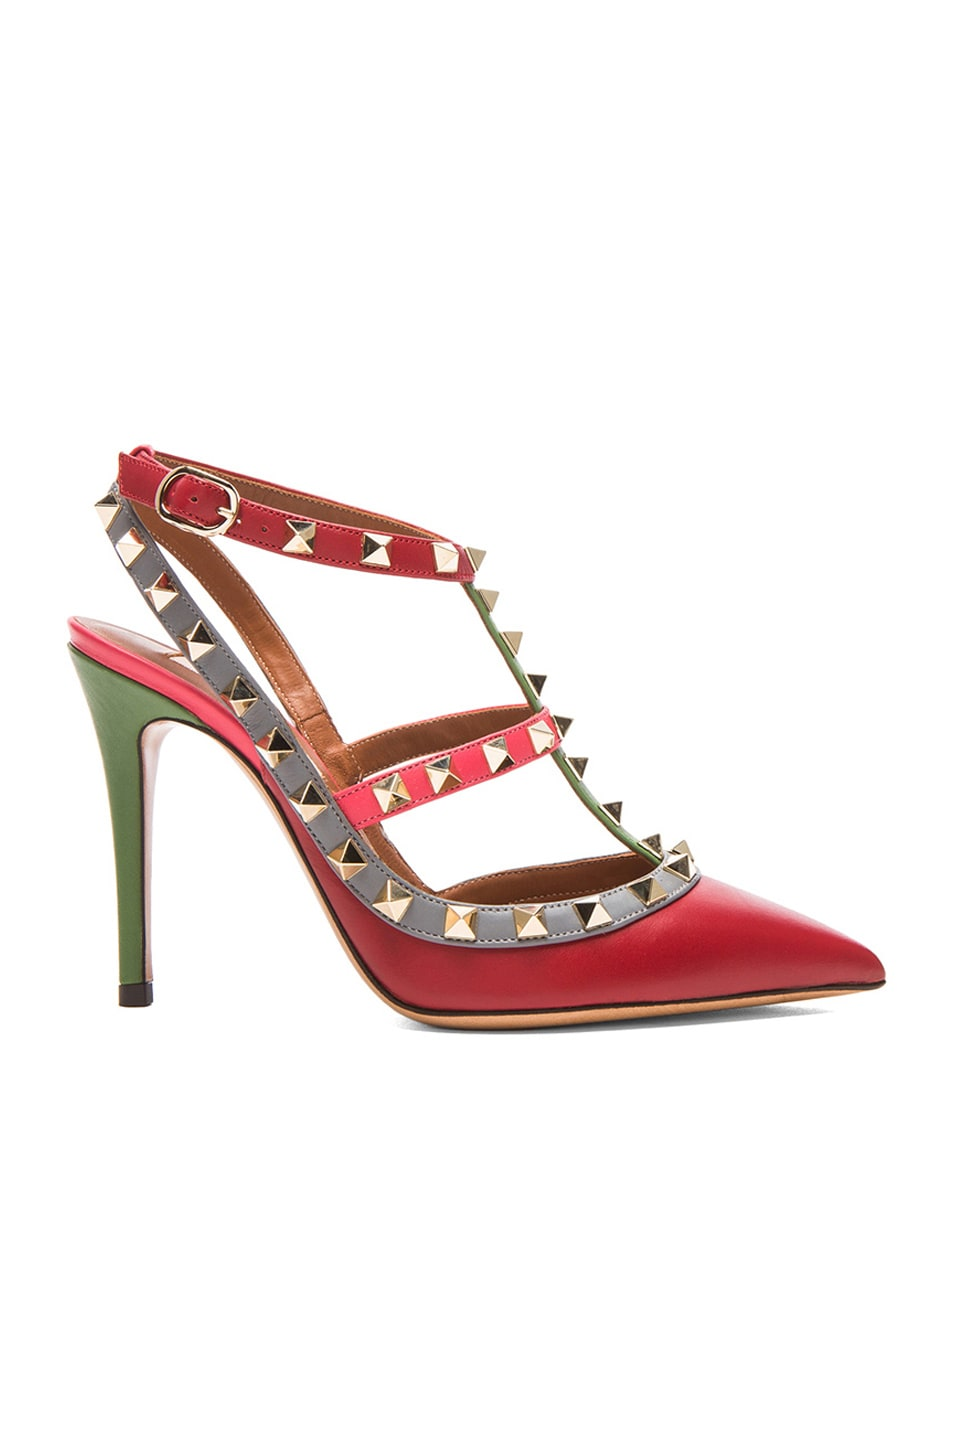 Image 1 of Valentino Rockstud Italian Pop Leather Slingbacks T.100 in Red Multi